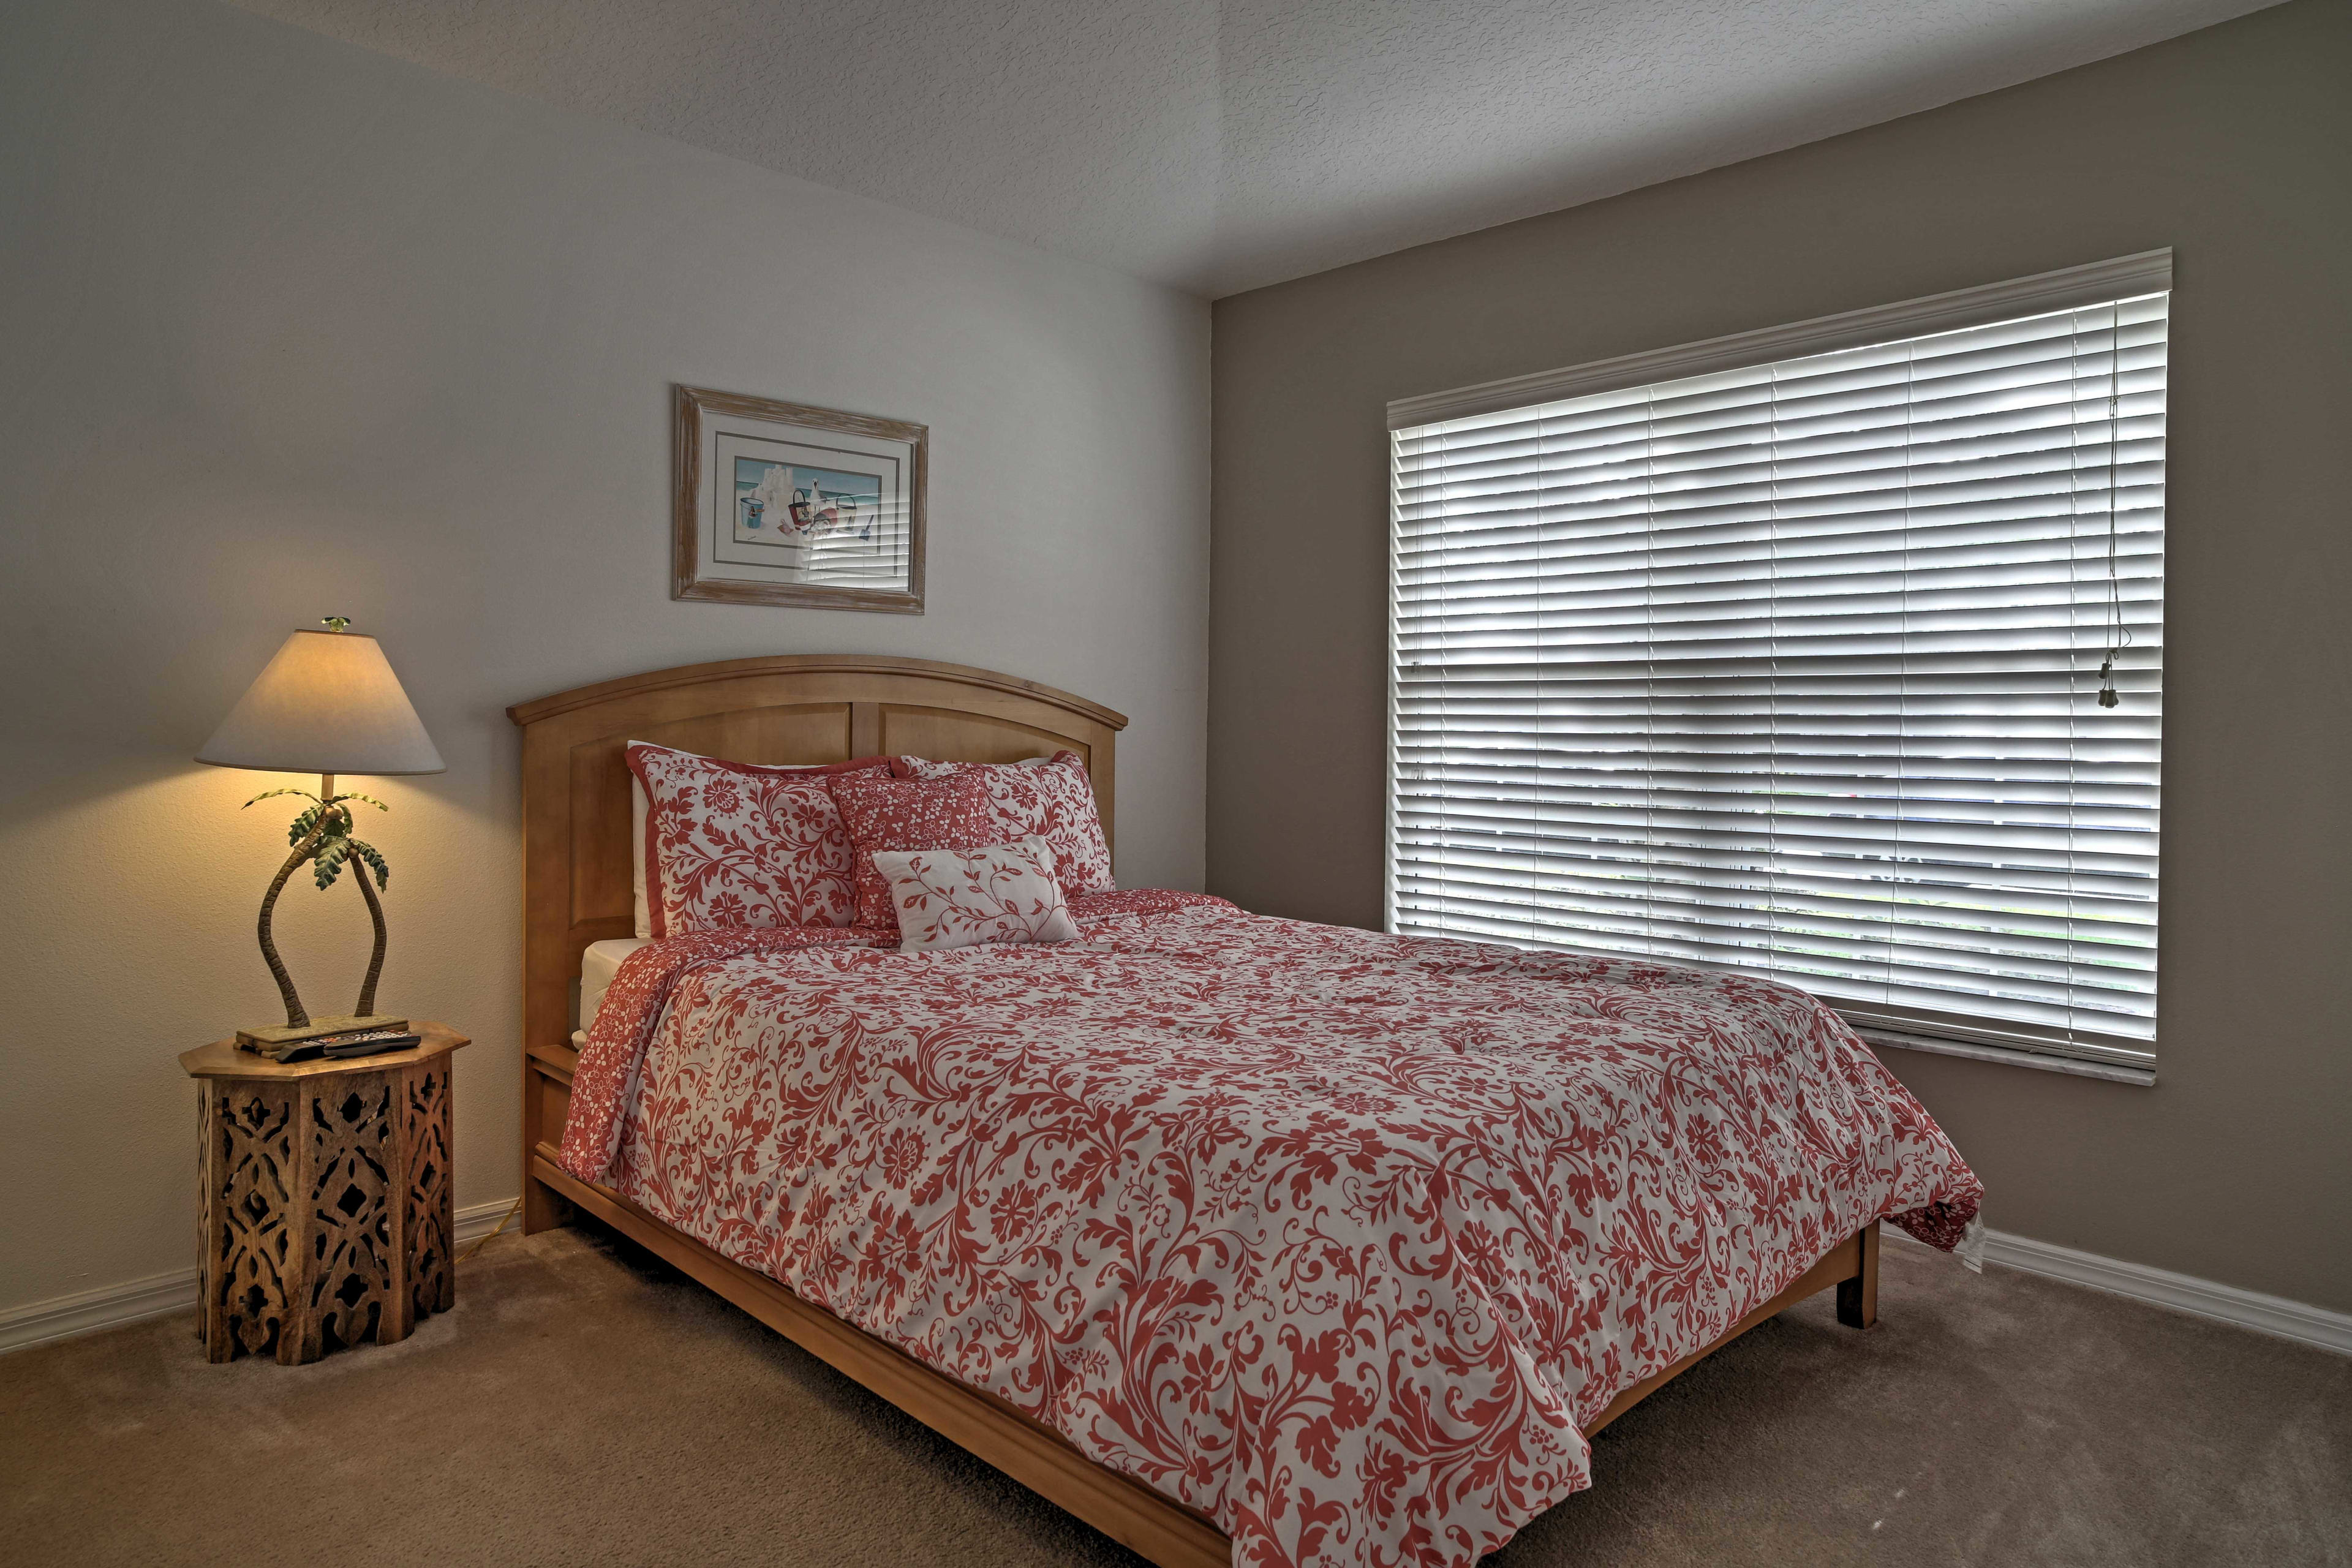 All of the bedrooms are equipped with flat-screen cable TVs.